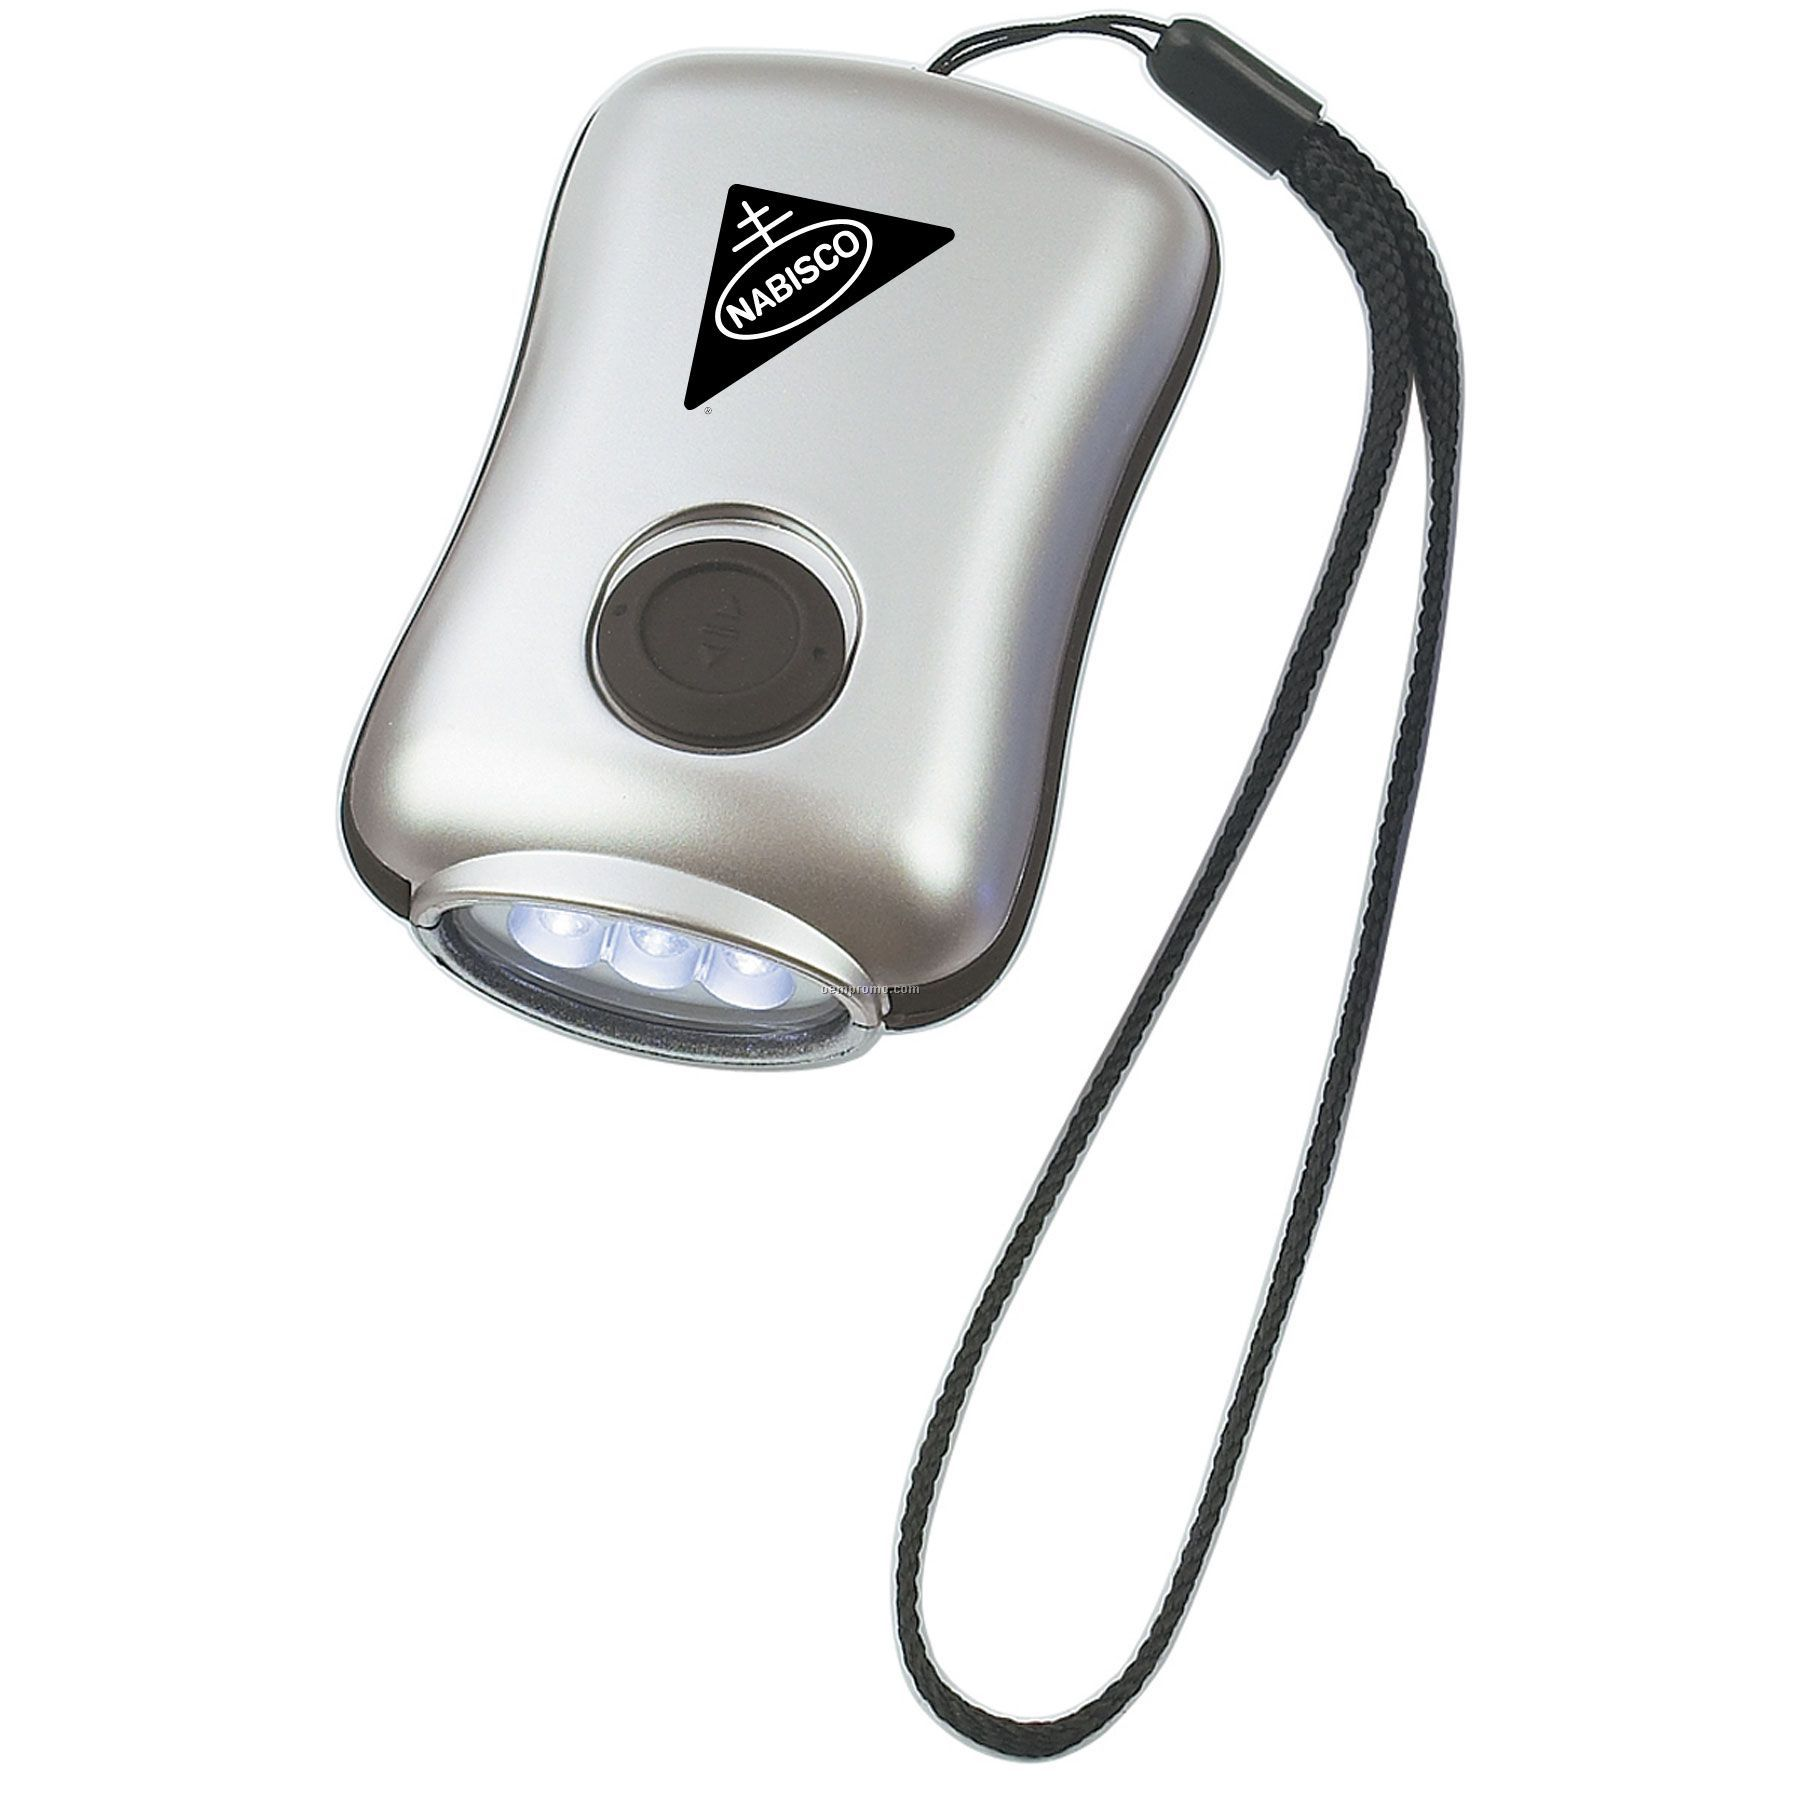 Silver LED Crank Flashlight W/ Wrist Strap